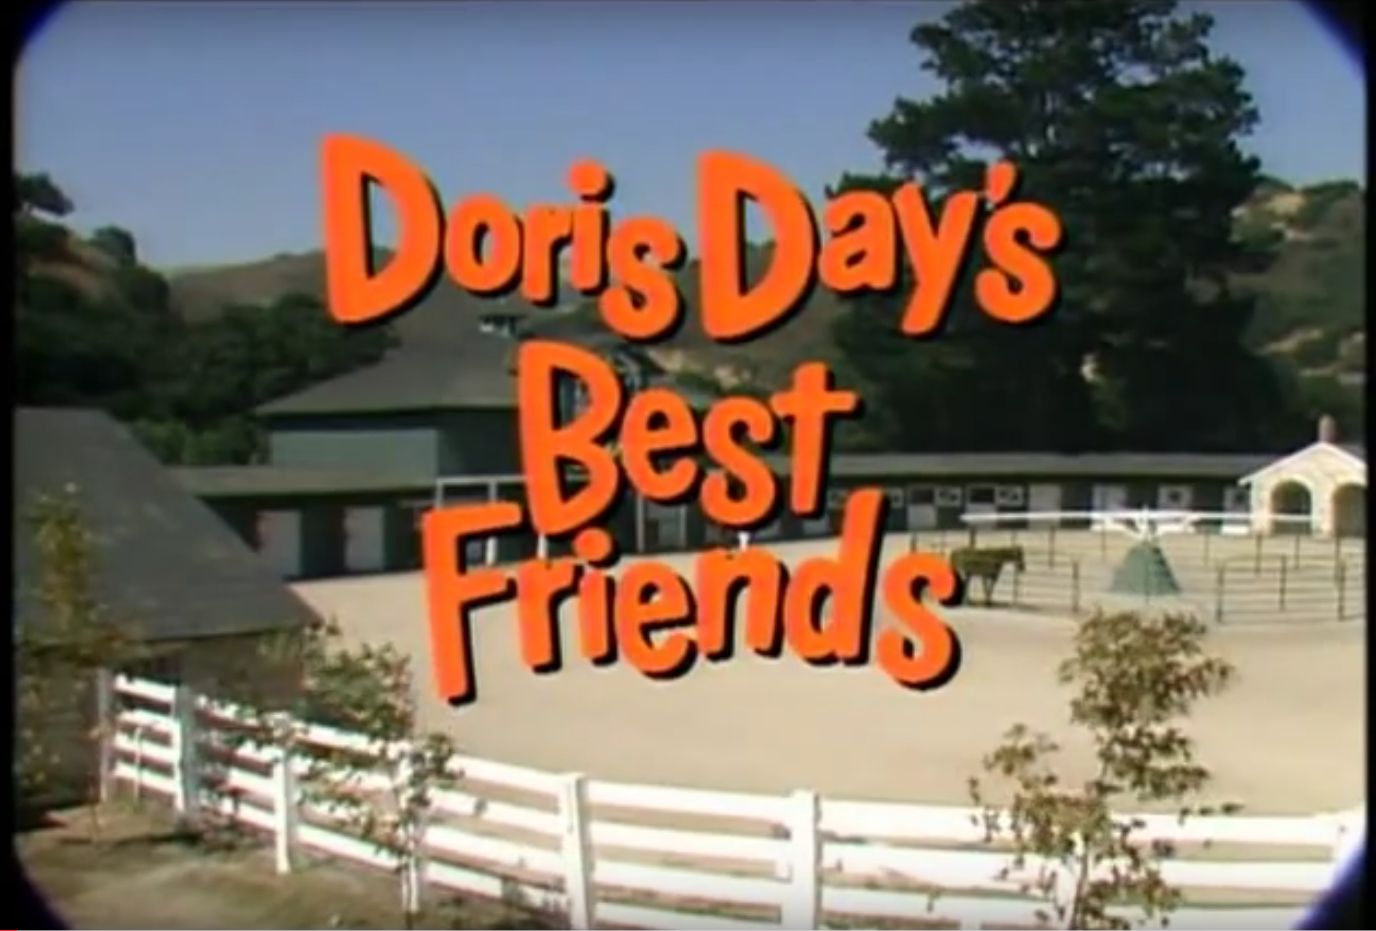 Doris Day's Best Friends, 1985